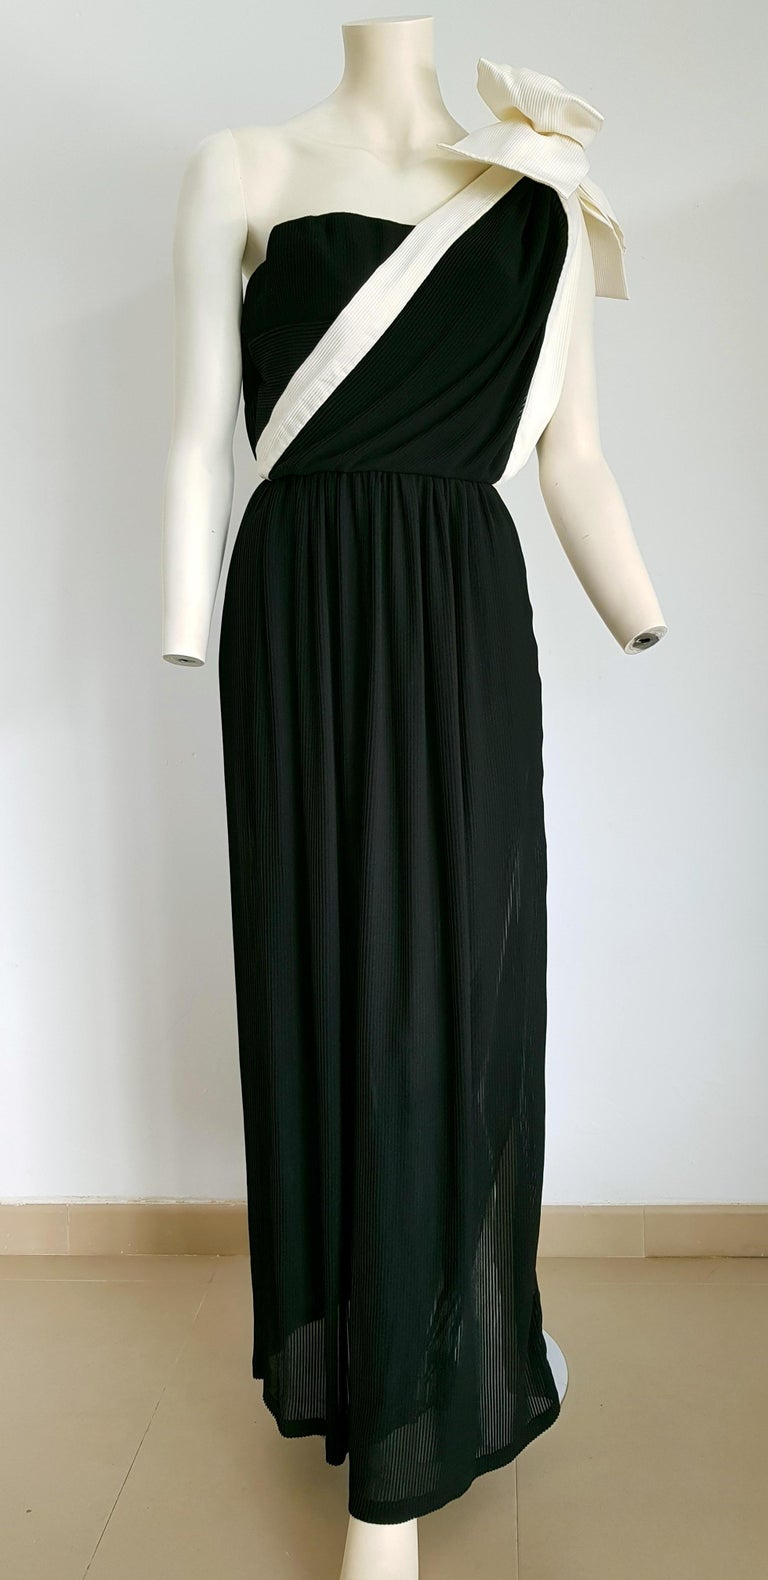 VALENTINO Haute Couture, one shoulder strap with white bow, vertical white left side stripe, pleated black silk dress gown - Unworn, New.  By